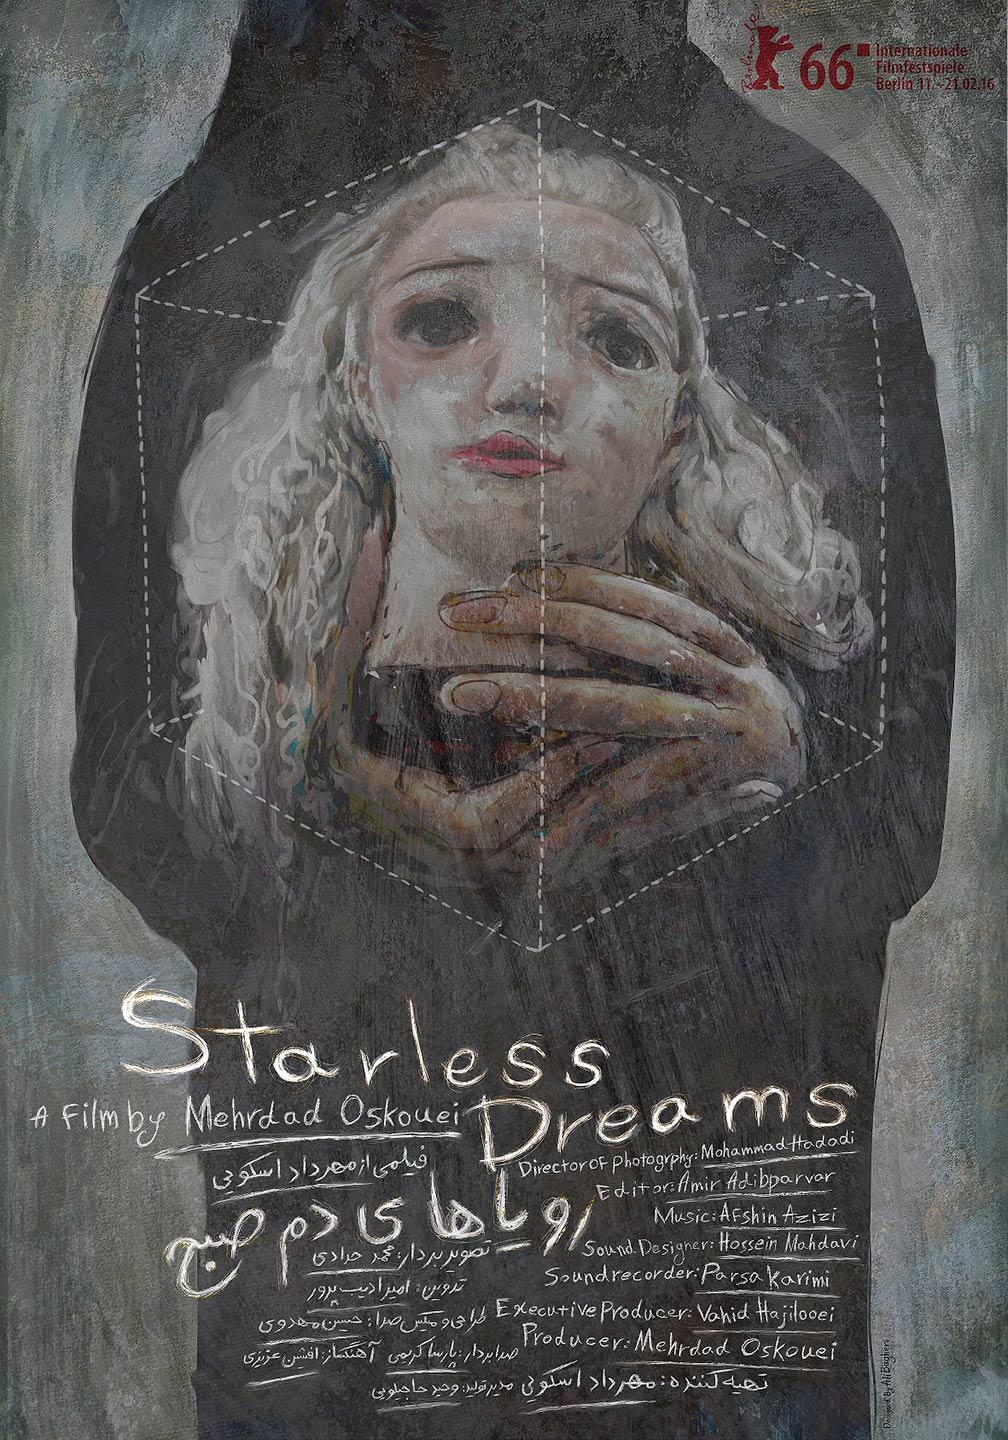 Starless Dreams Poster #1